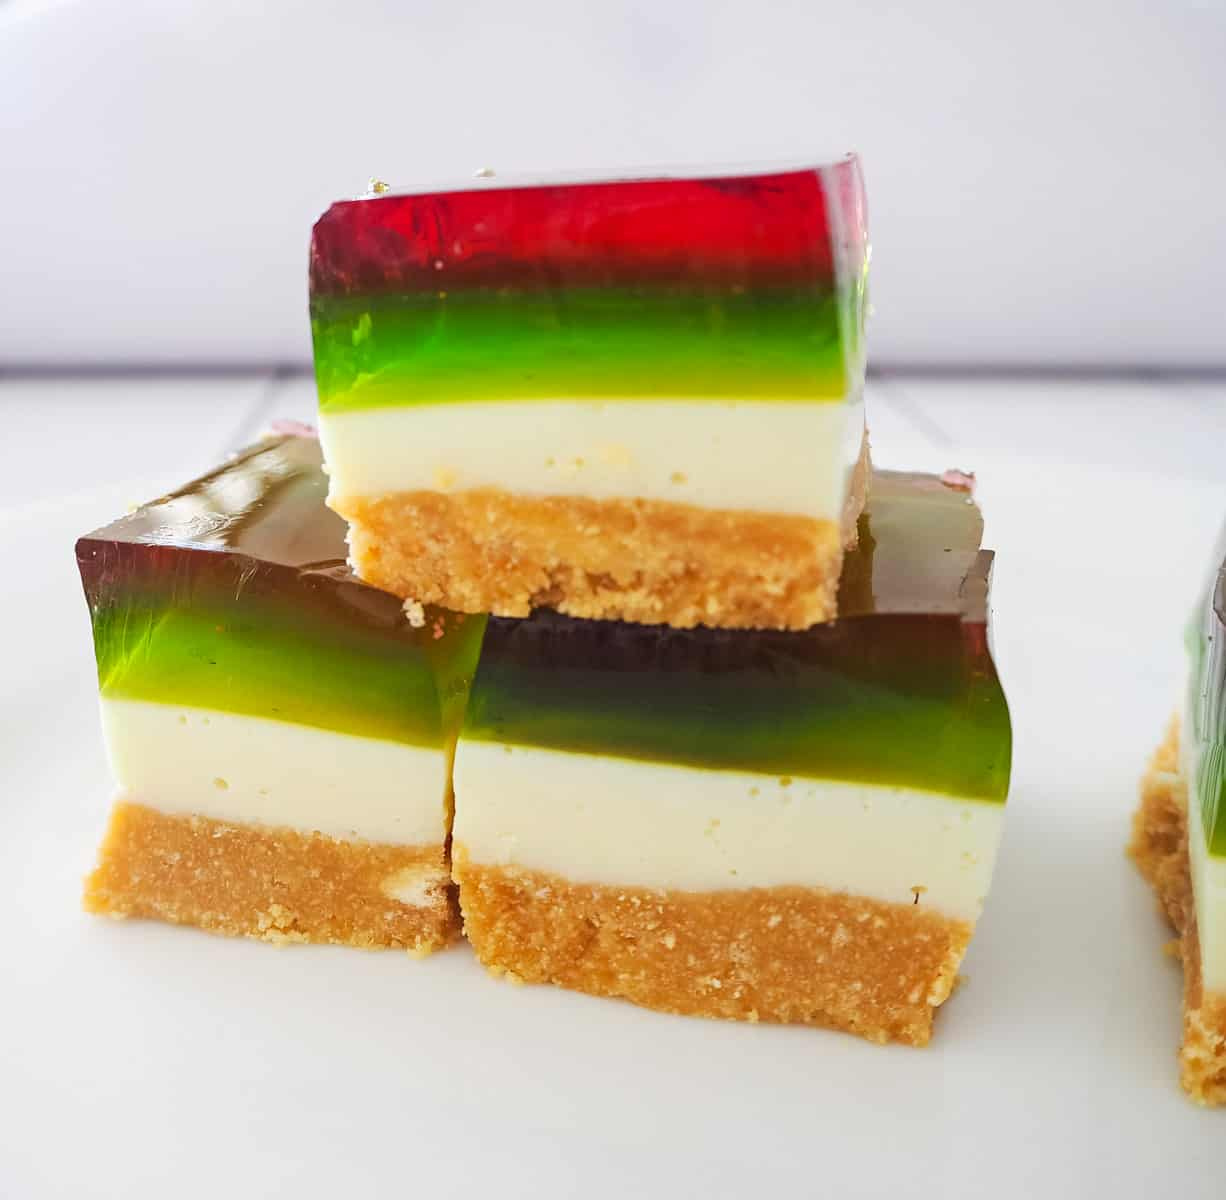 Three pieces of red, green and white layered jelly slice